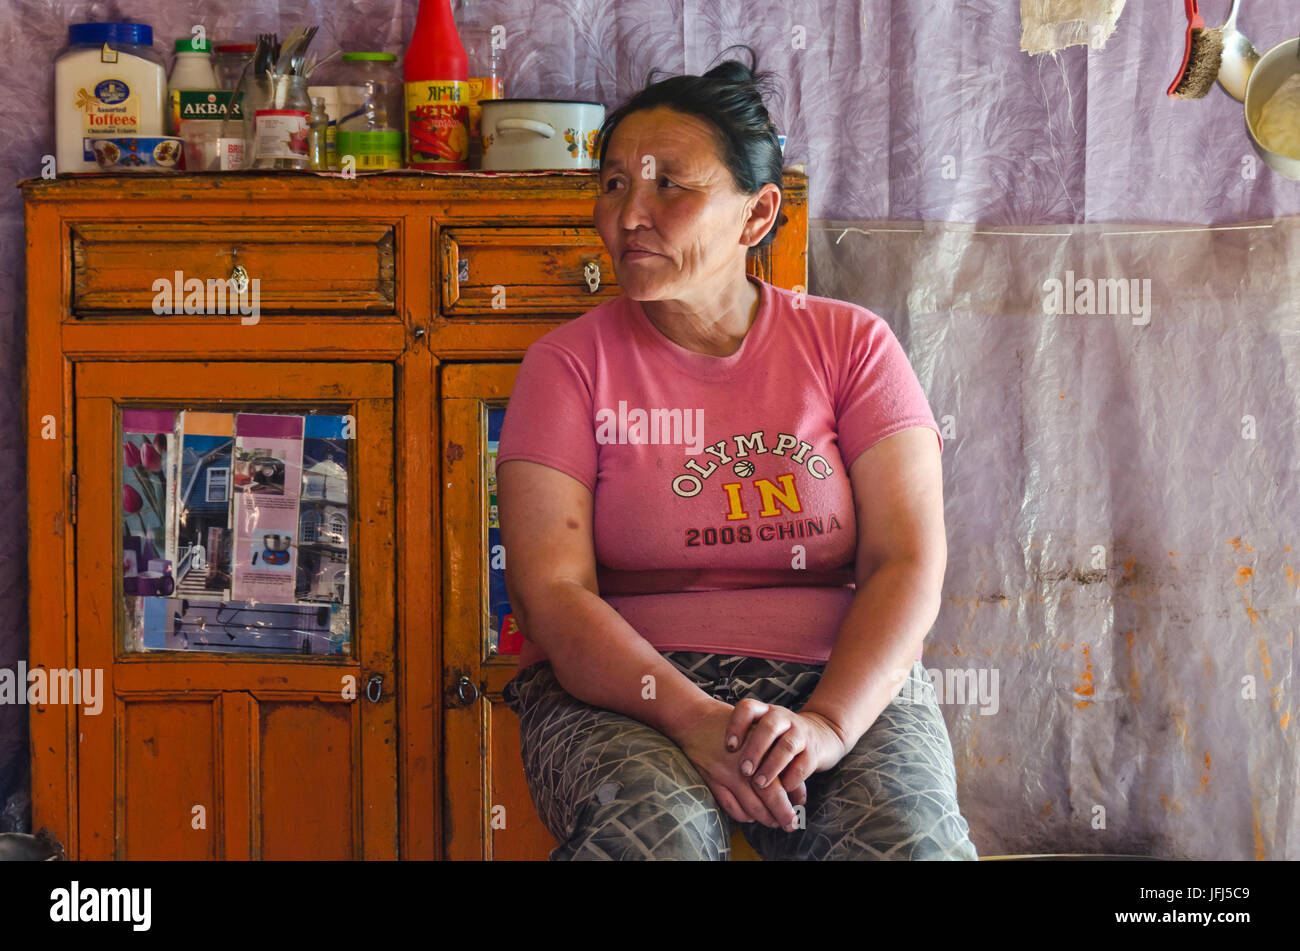 Mongolia, Central Asia, bike tour Tamir - Tsetserleg, stage 5, nomad, yurt, inside, woman - Stock Image